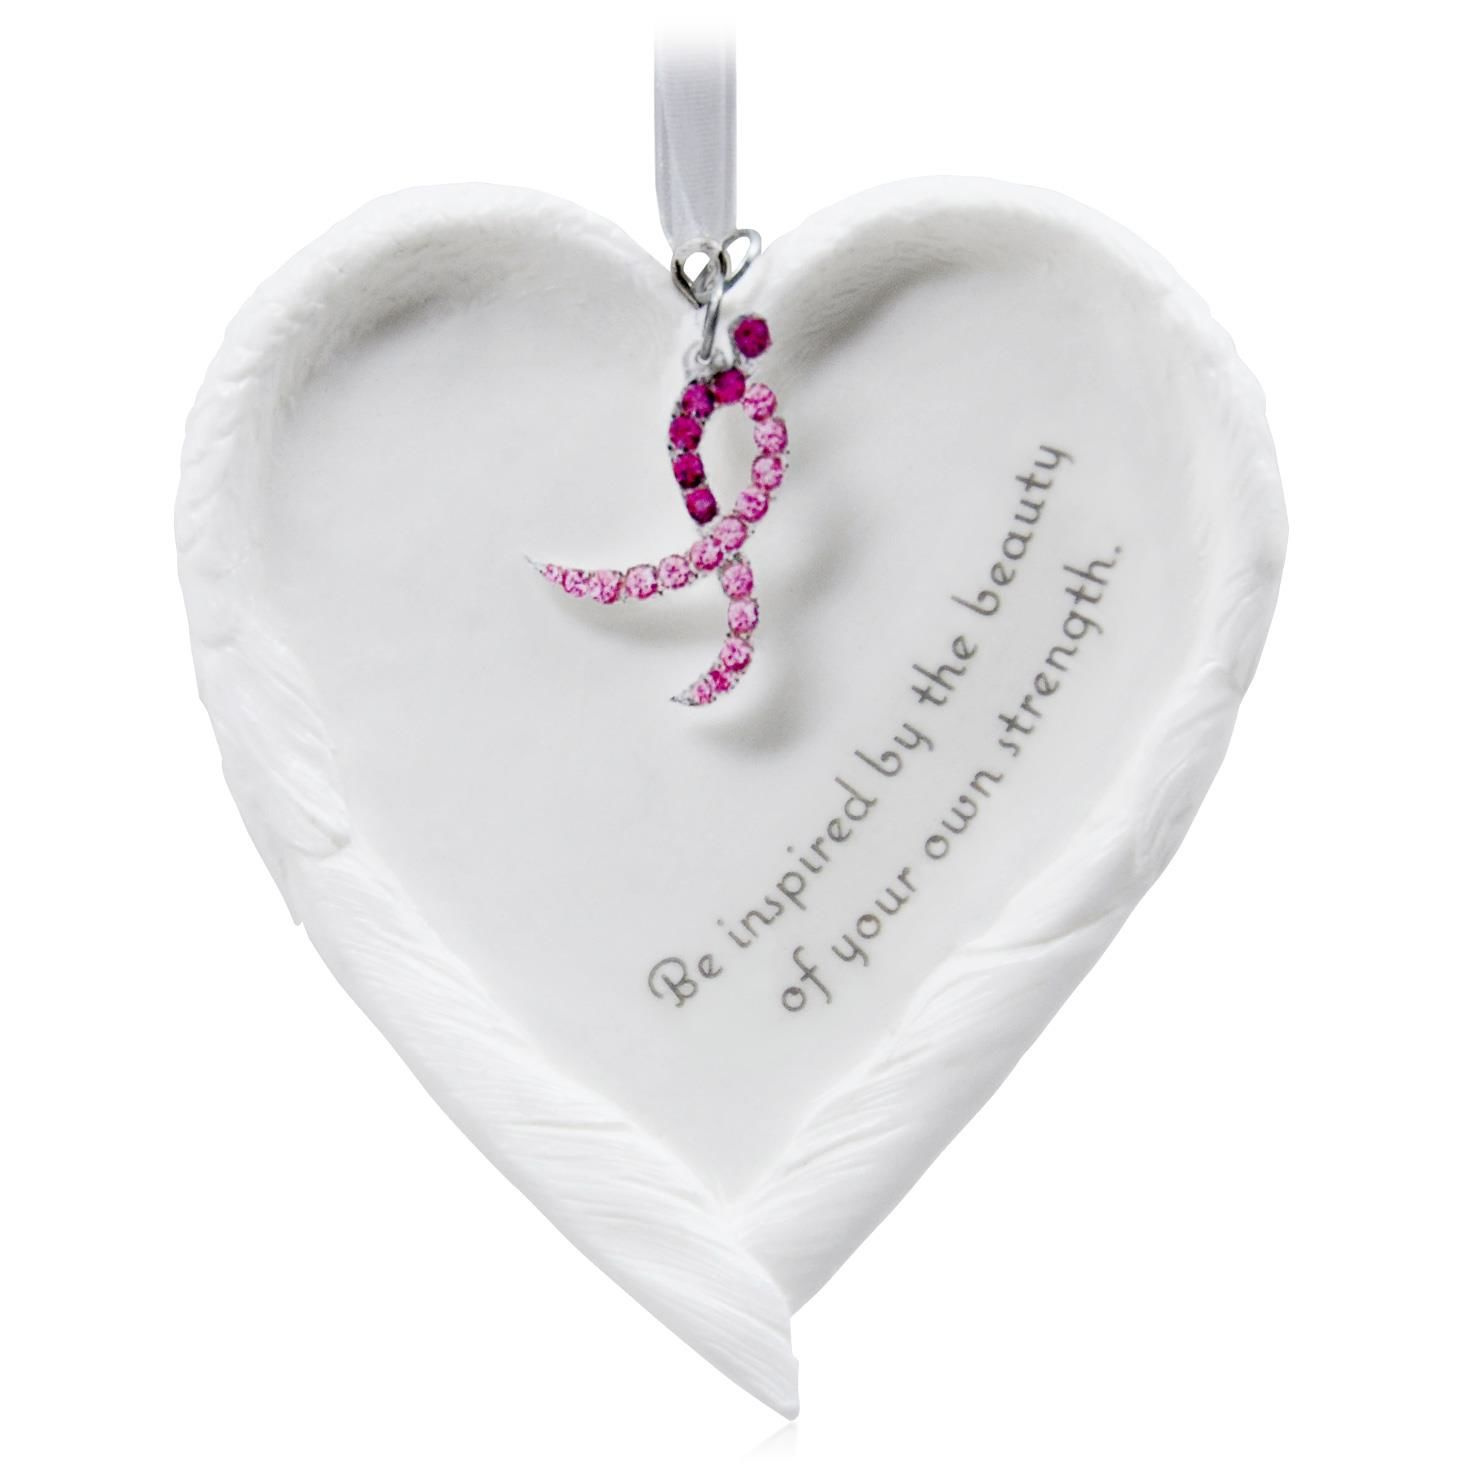 Breast cancer ornament - 2015 Beautiful You Susan Komen Hallmark Keepsake Ornament Hooked On Hallmark Ornaments